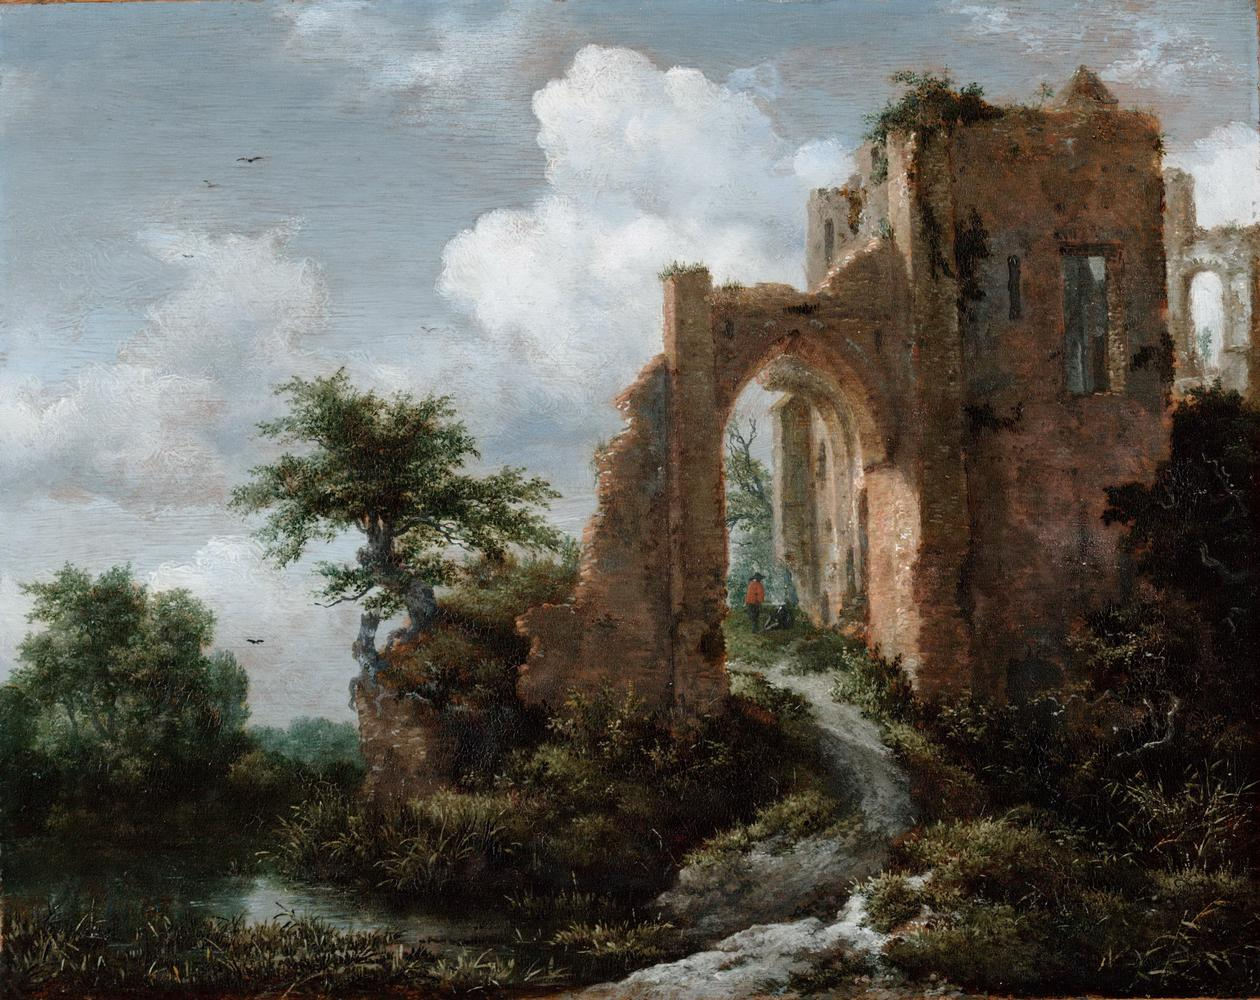 jacob-isaacksz-van-ruisdael-dutch-entrance-gate-of-the-castle-of-brederode.jpeg